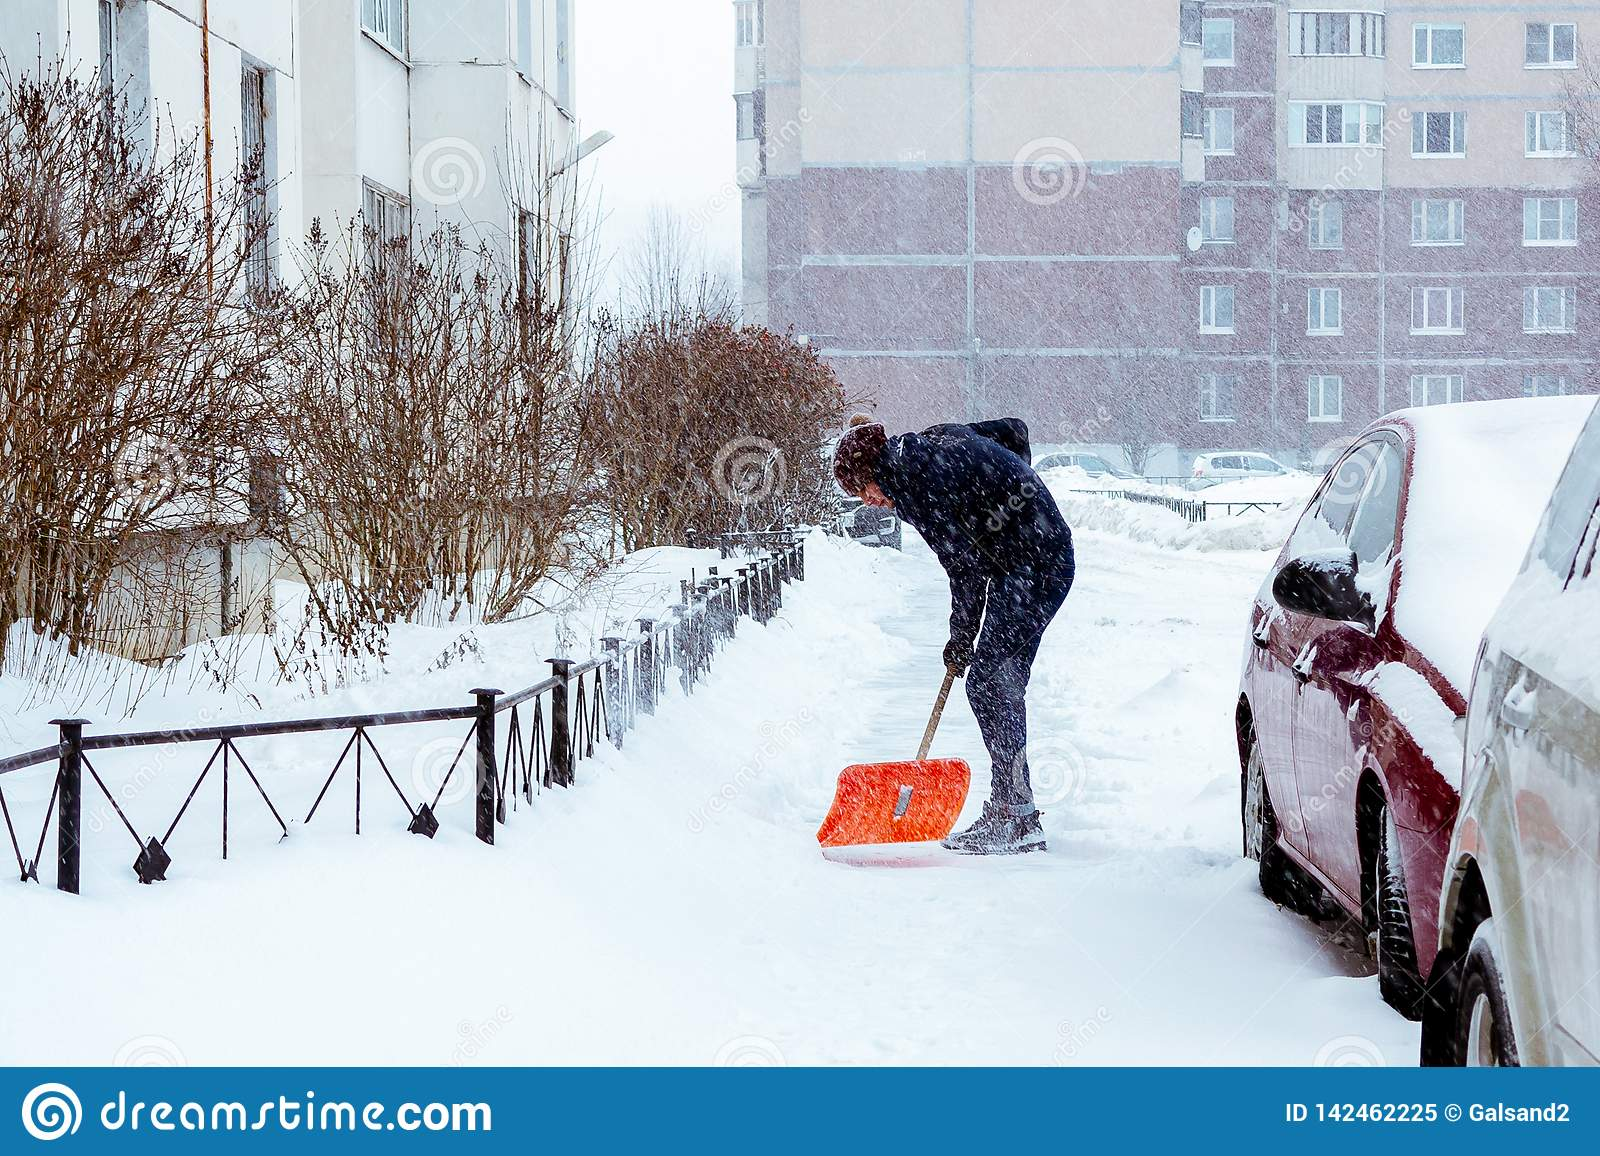 St. Petersburg, Russia - January 17, 2019: A man cleans snow in the yard with a shovel after a heavy snowfall